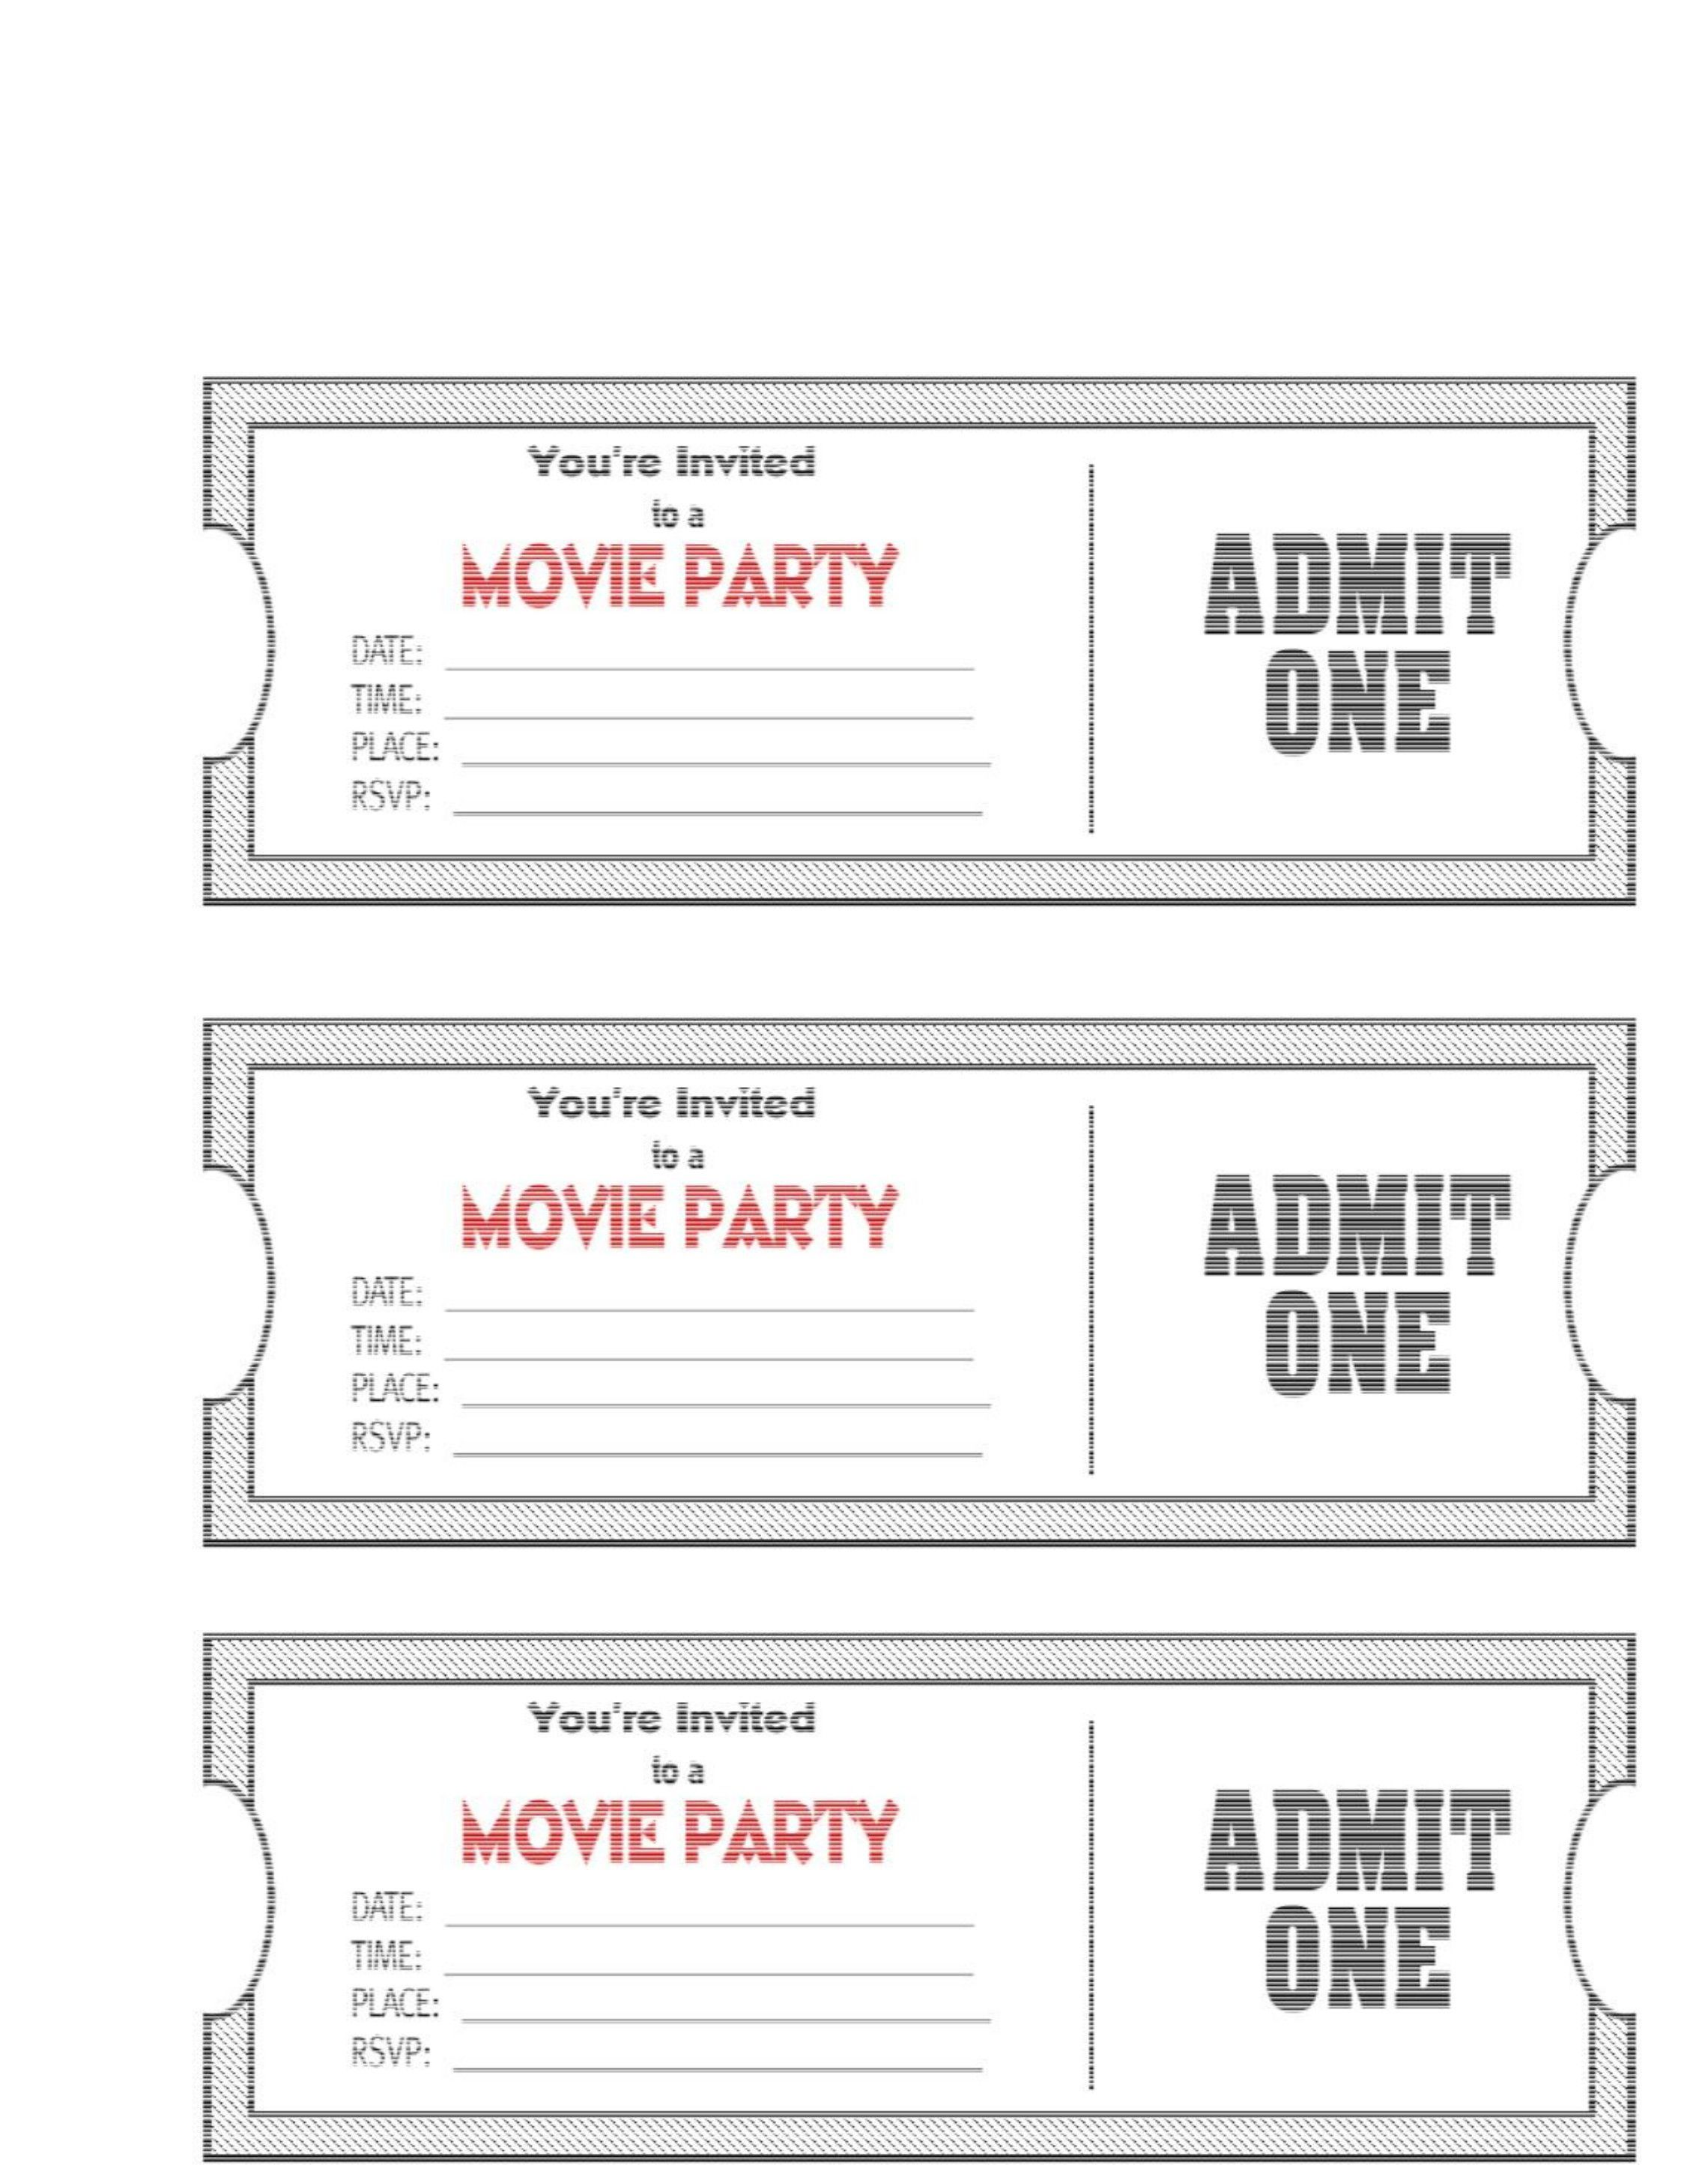 004 Phenomenal Editable Ticket Template Free Image  Word Airline RaffleFull